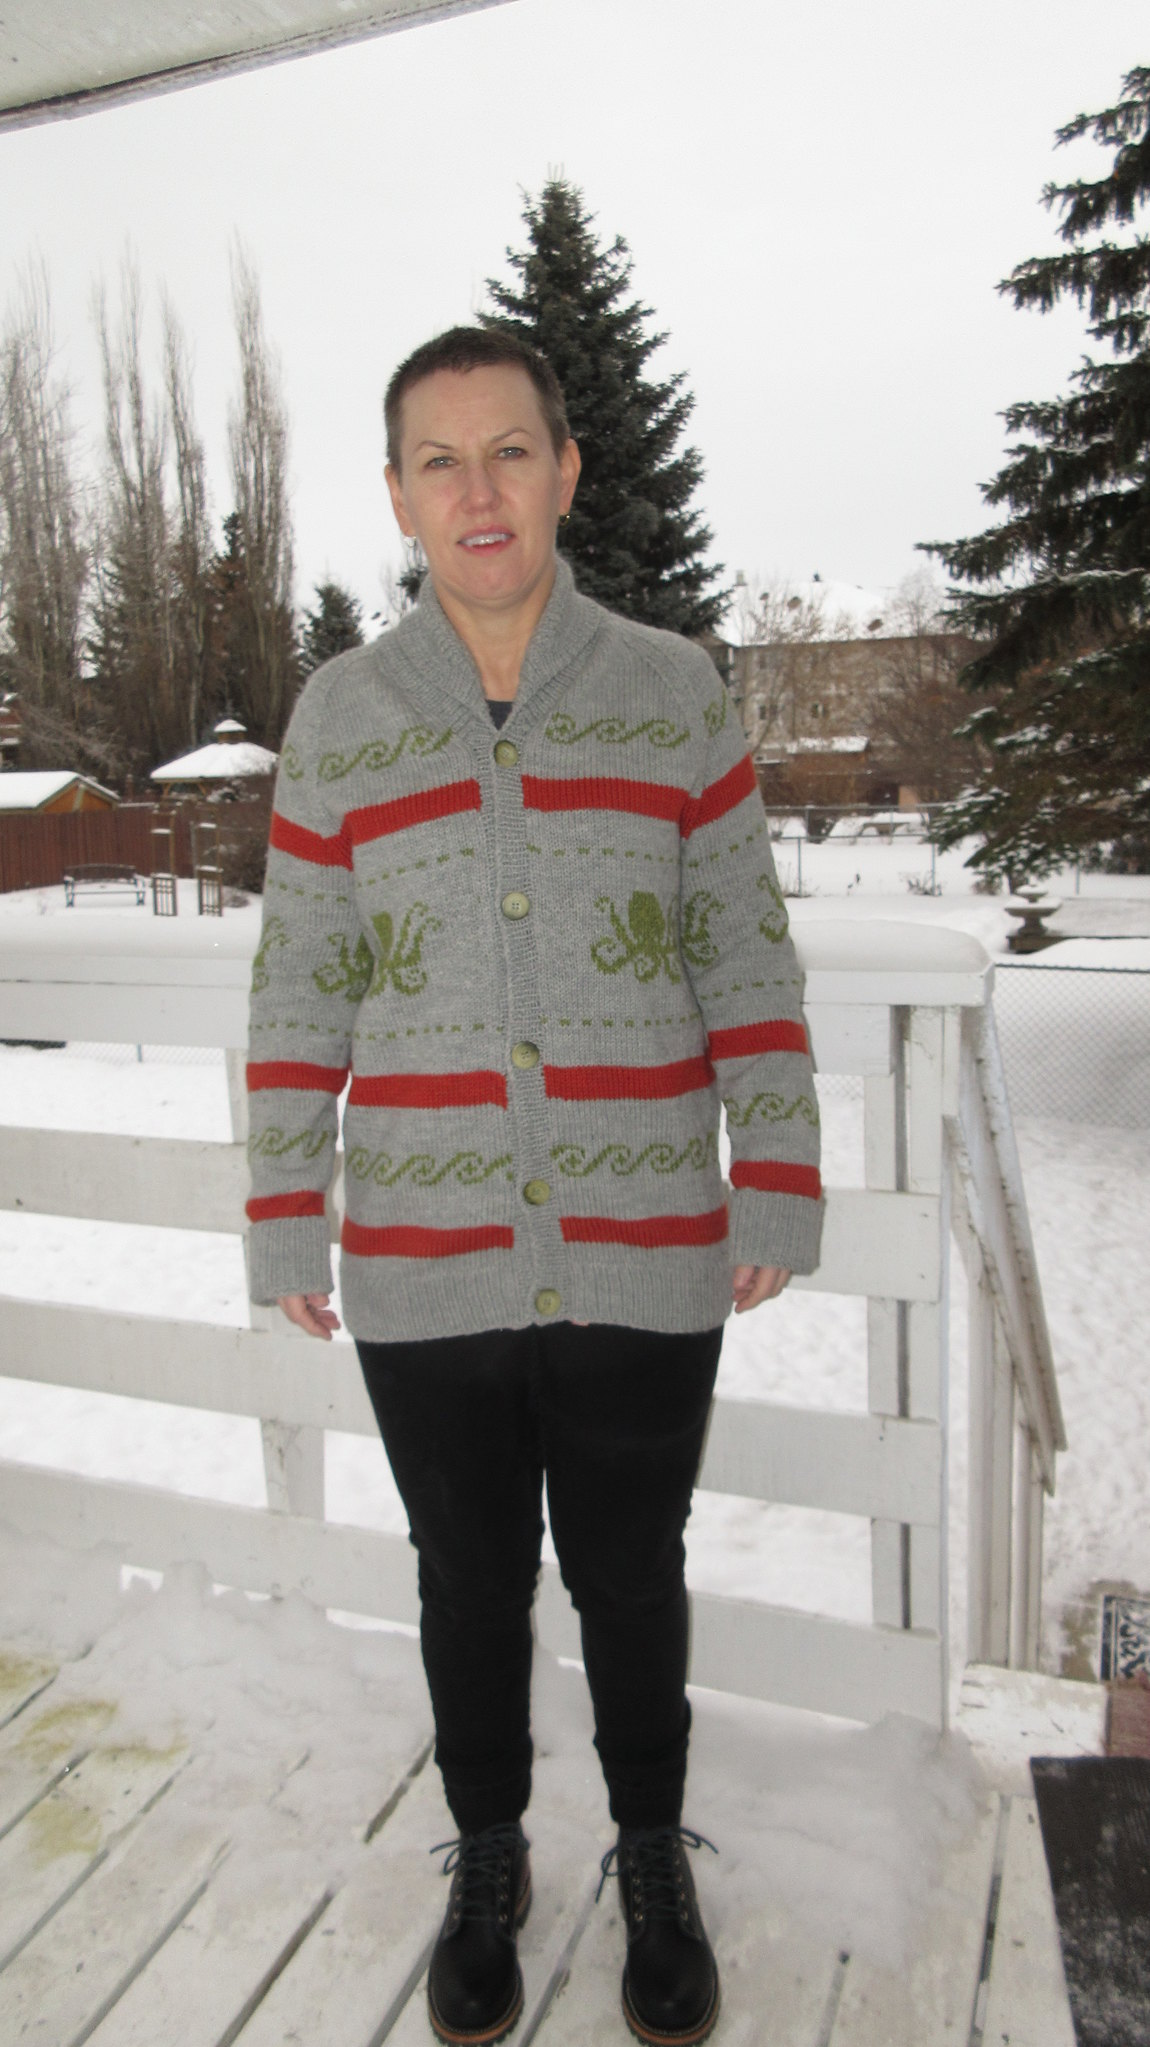 The Knitter's Dude sweater, modified